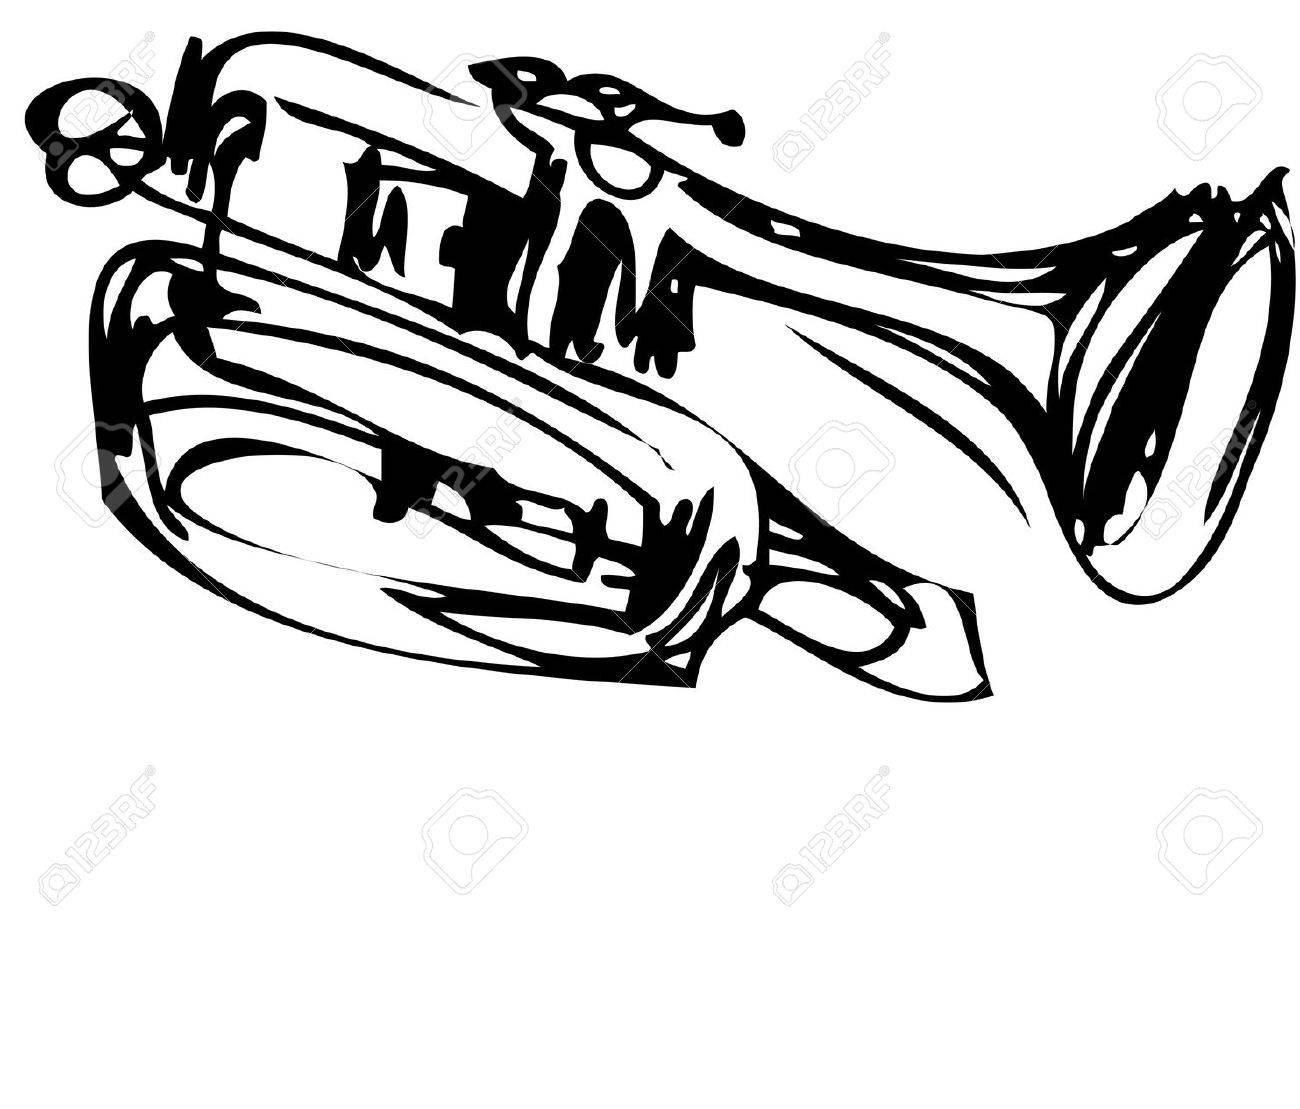 a sketch of copper Cornet Musical Instrument Stock Vector - 11119036